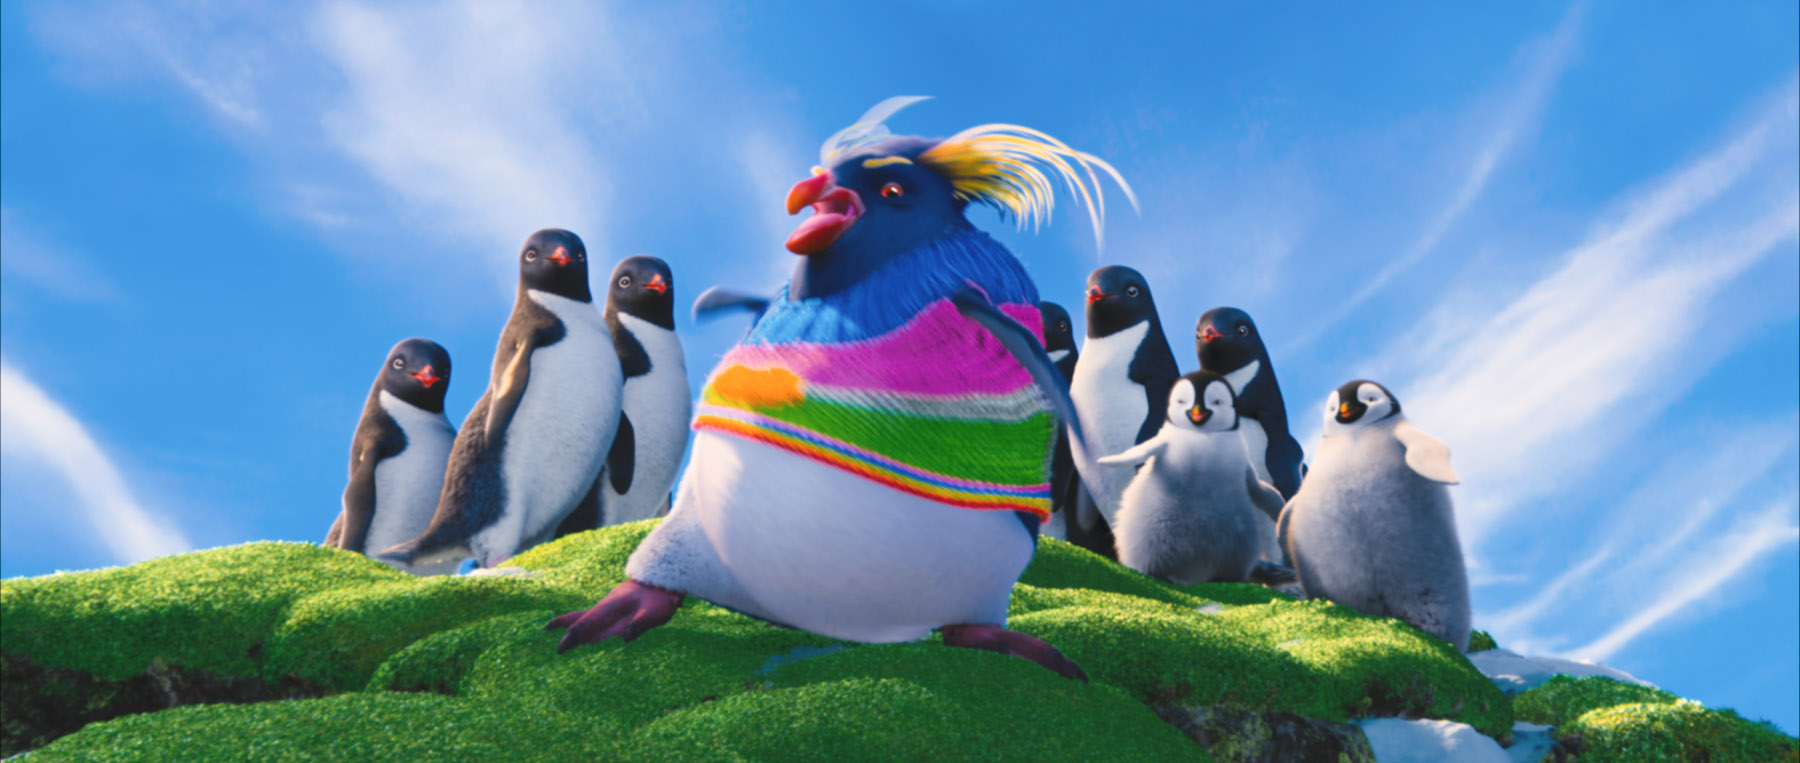 Uncategorized Lovelace Happy Feet lovelace from happy feet 2 desktop wallpaper click picture for high resolution hd wallpaper